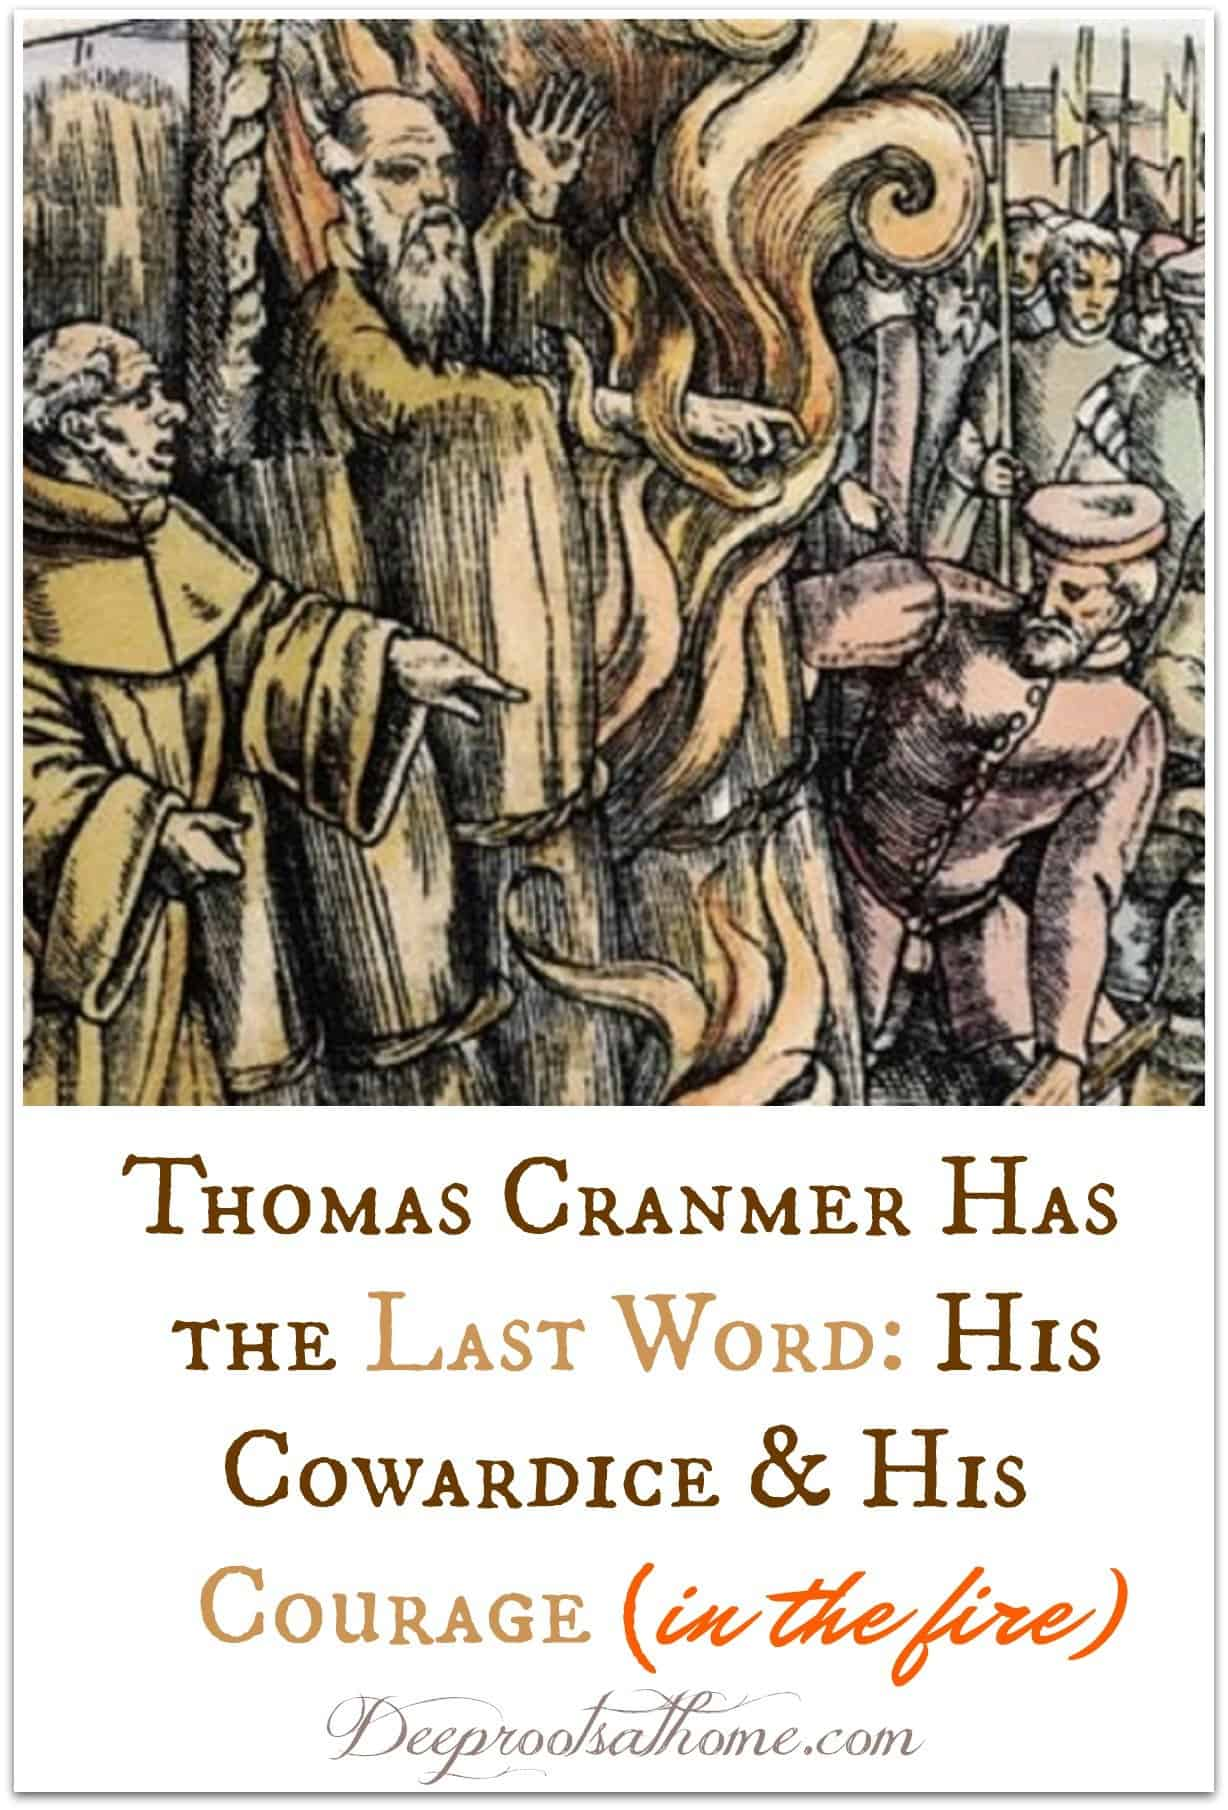 Thomas Cranmer Had the Last Word: His Cowardice & His Courage. Cranmer burning